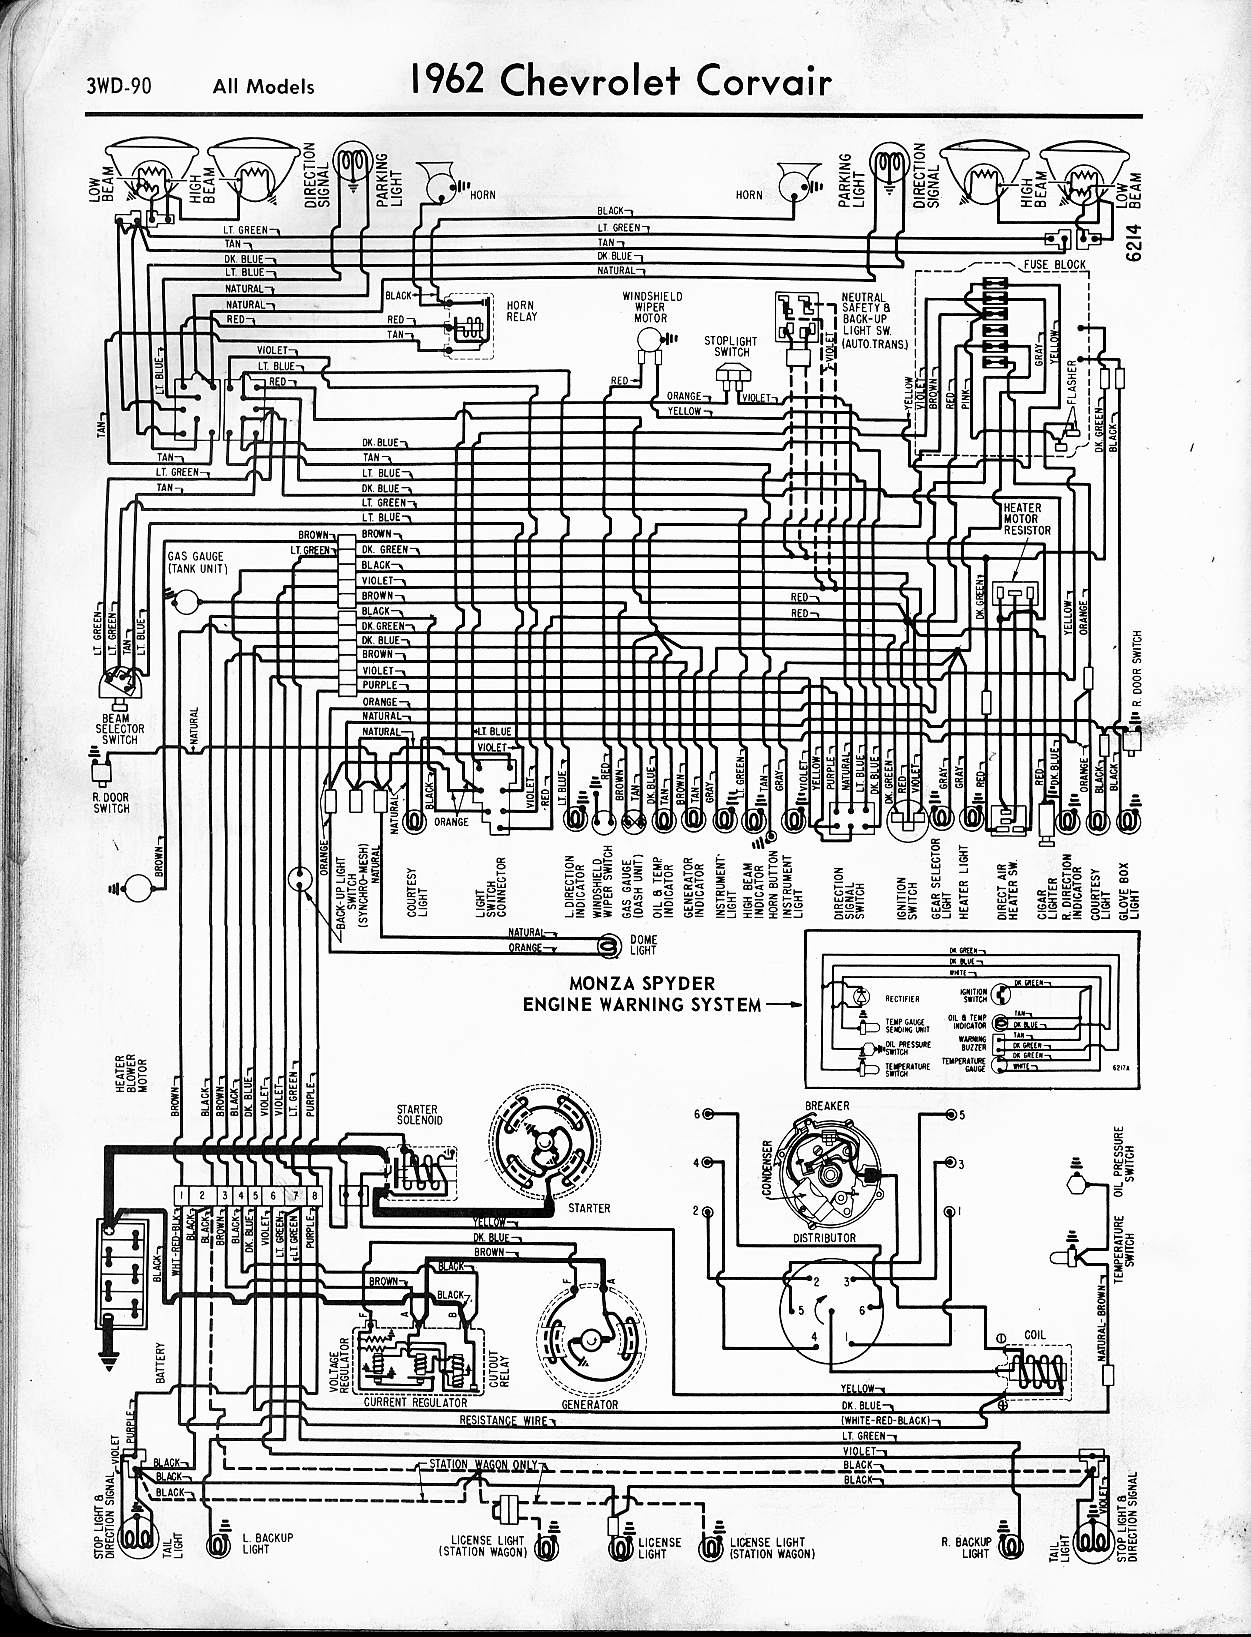 62 Chevy Impala Wiring Diagram Opinions About Harness 57 65 Diagrams 1962 2012 Starter